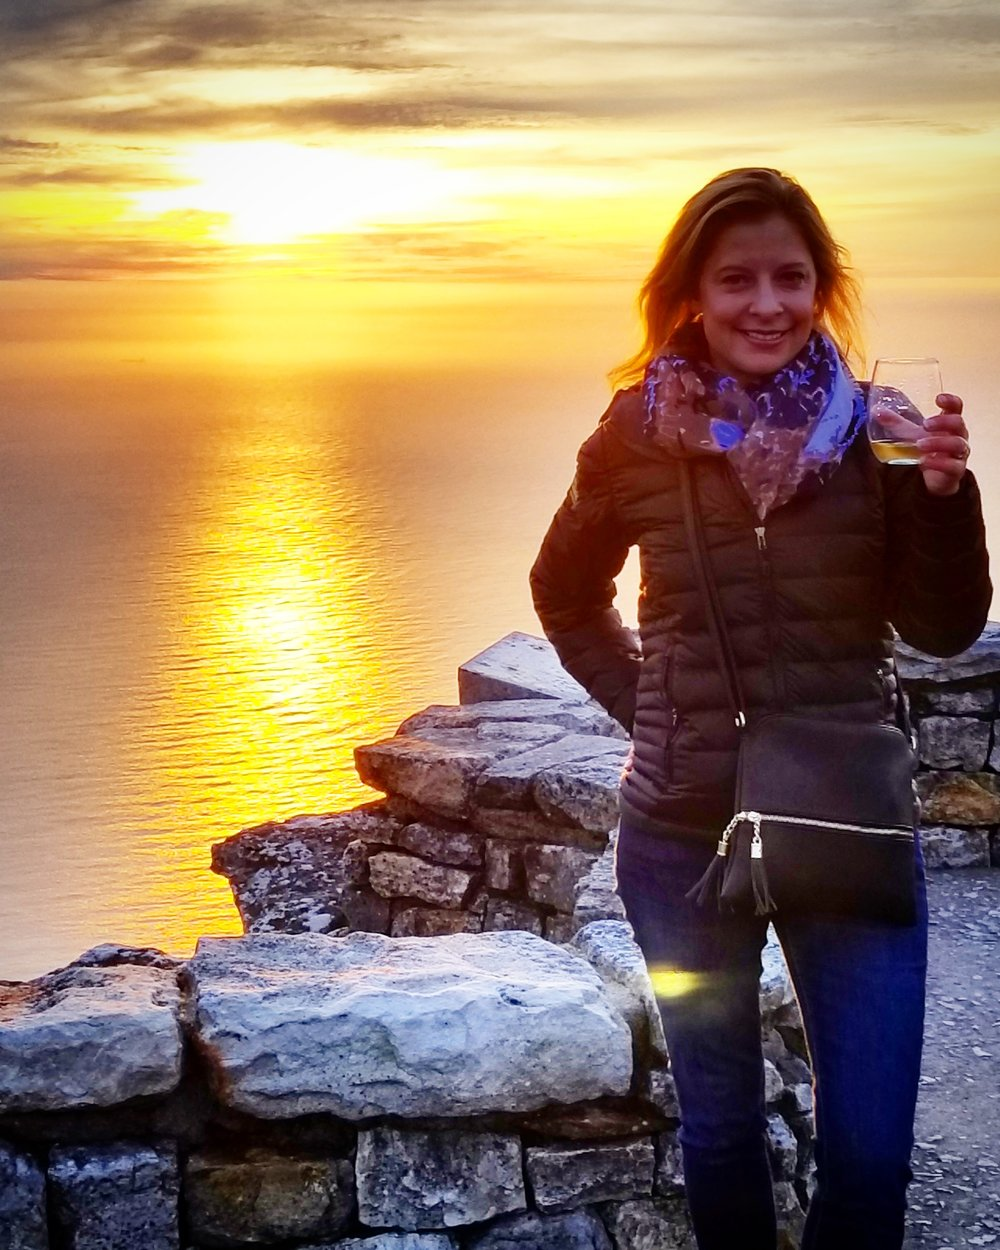 Sipping Methode Cap Classique at sunset at the top of Table Mountain in Cape Town, South Africa.